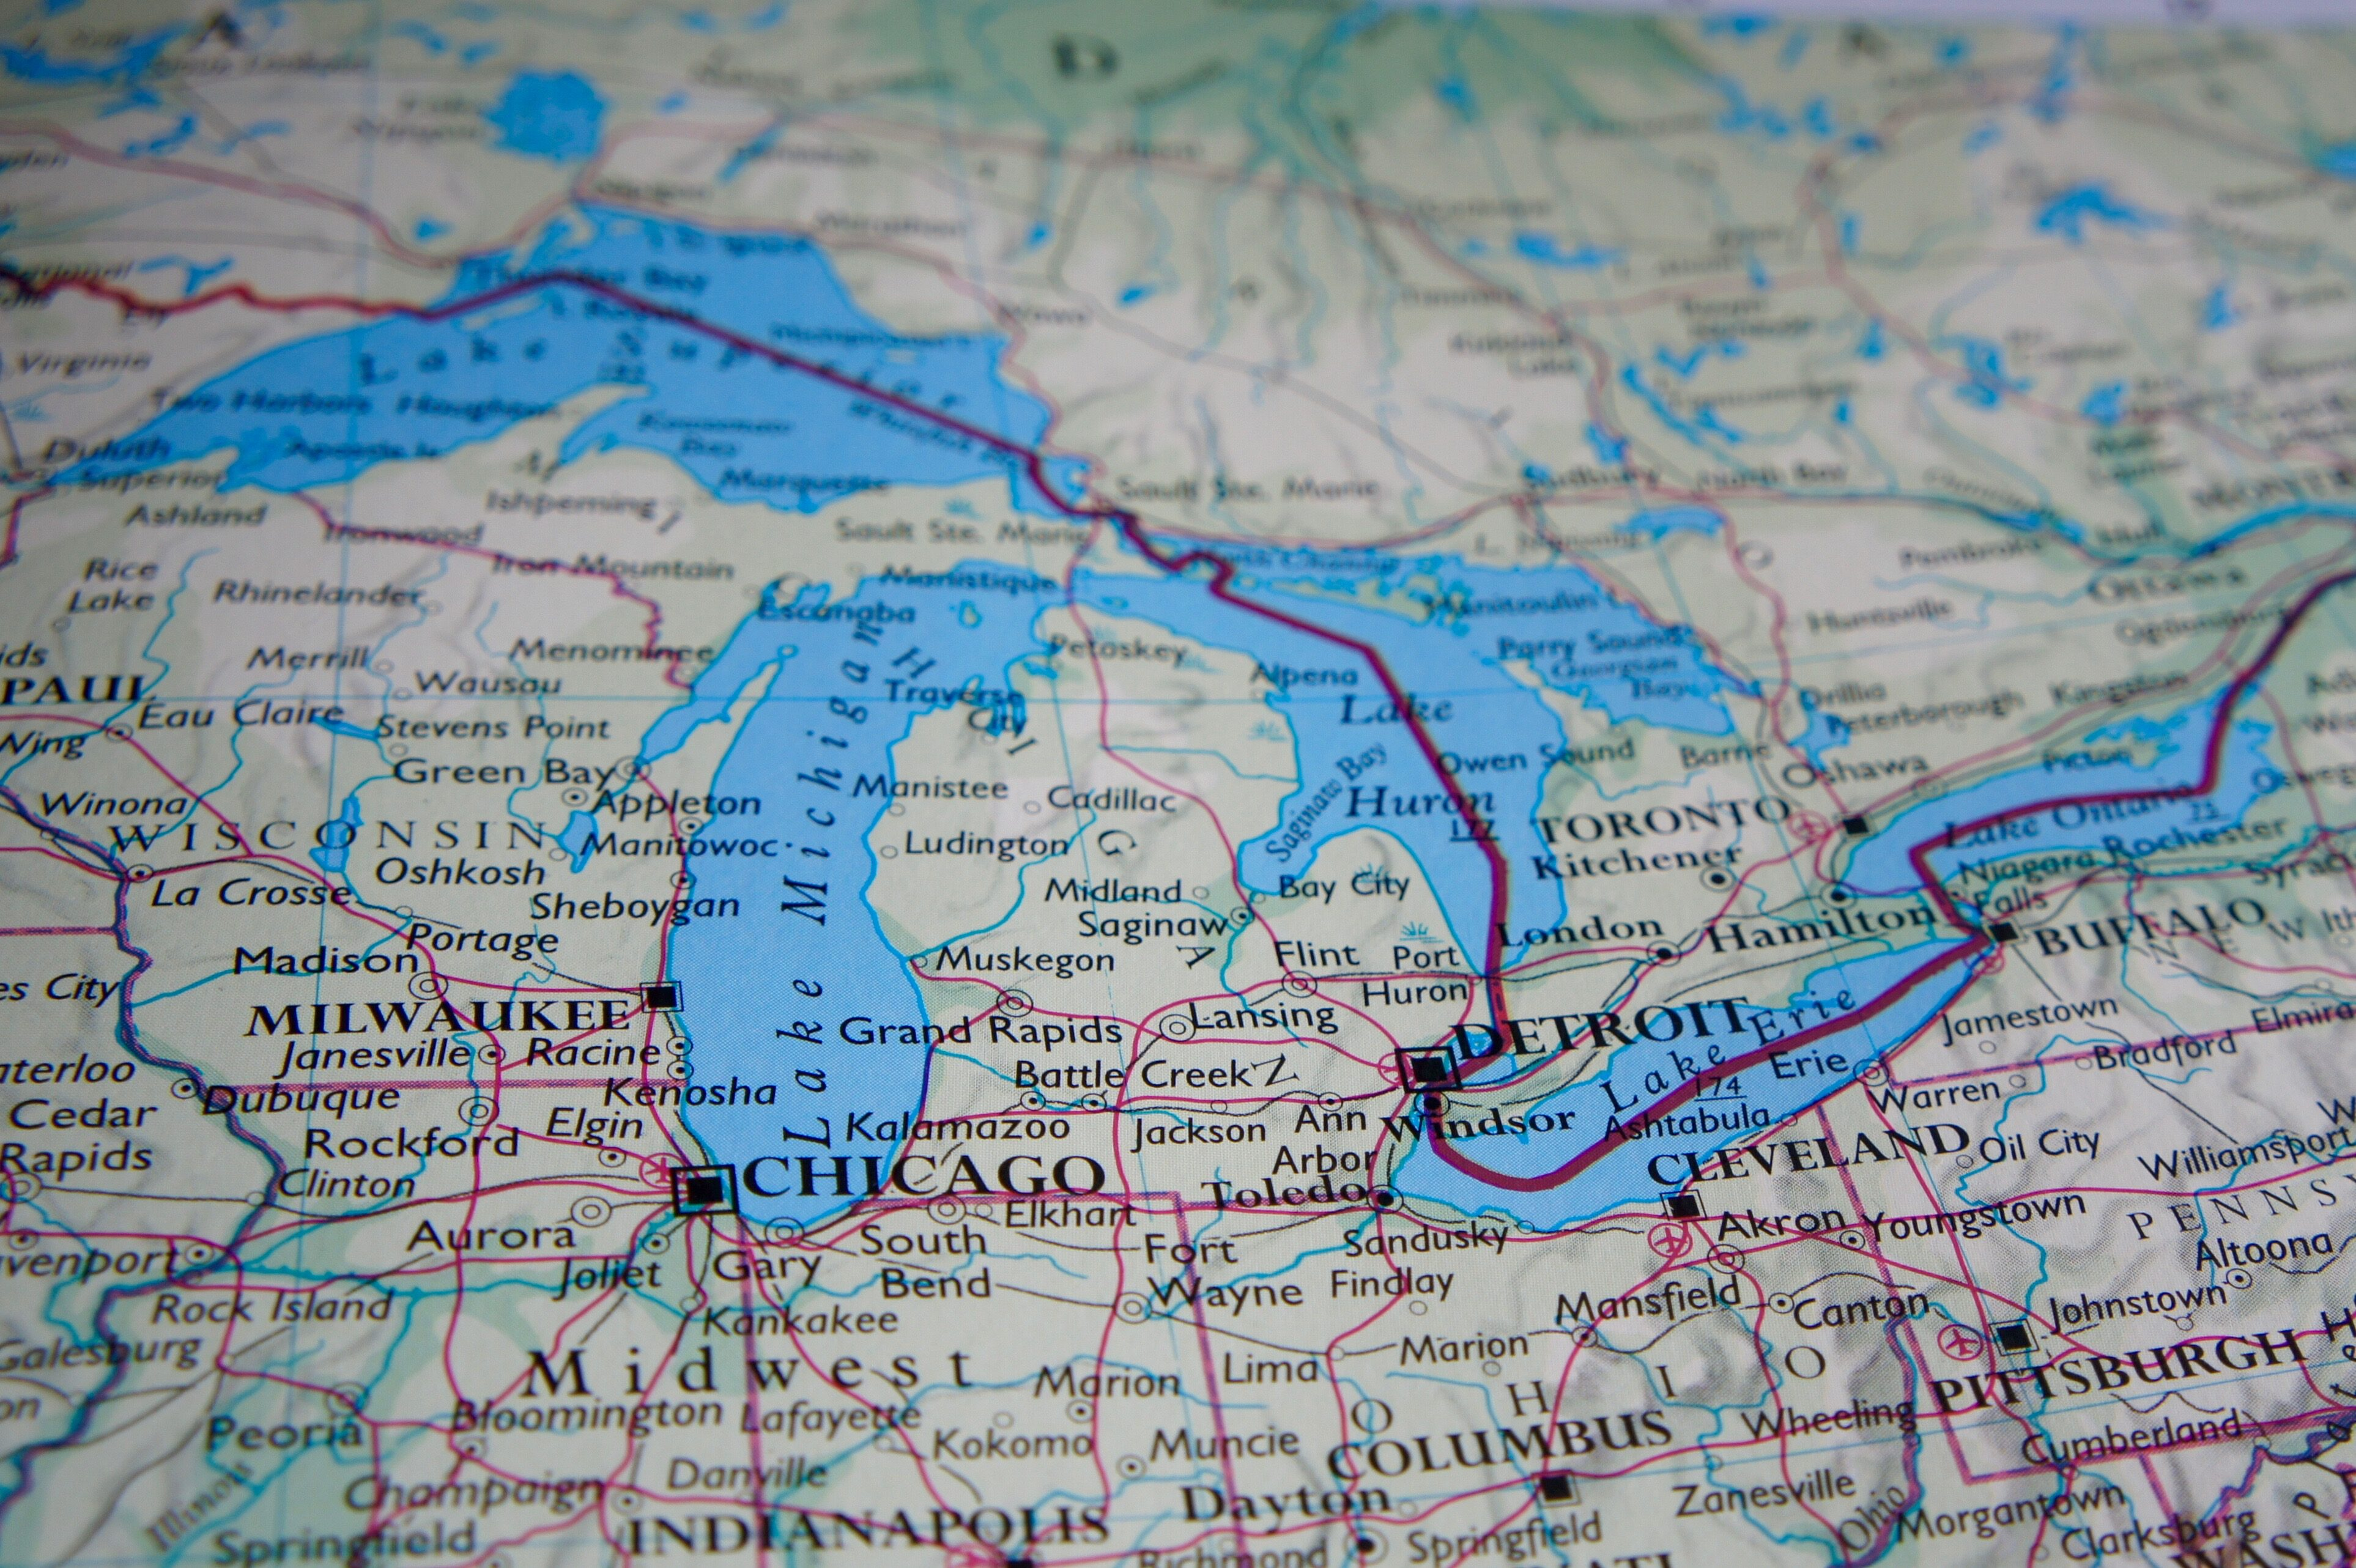 Maps highlight Michigan cities, groups that will bear brunt of climate change effects - University of Michigan News